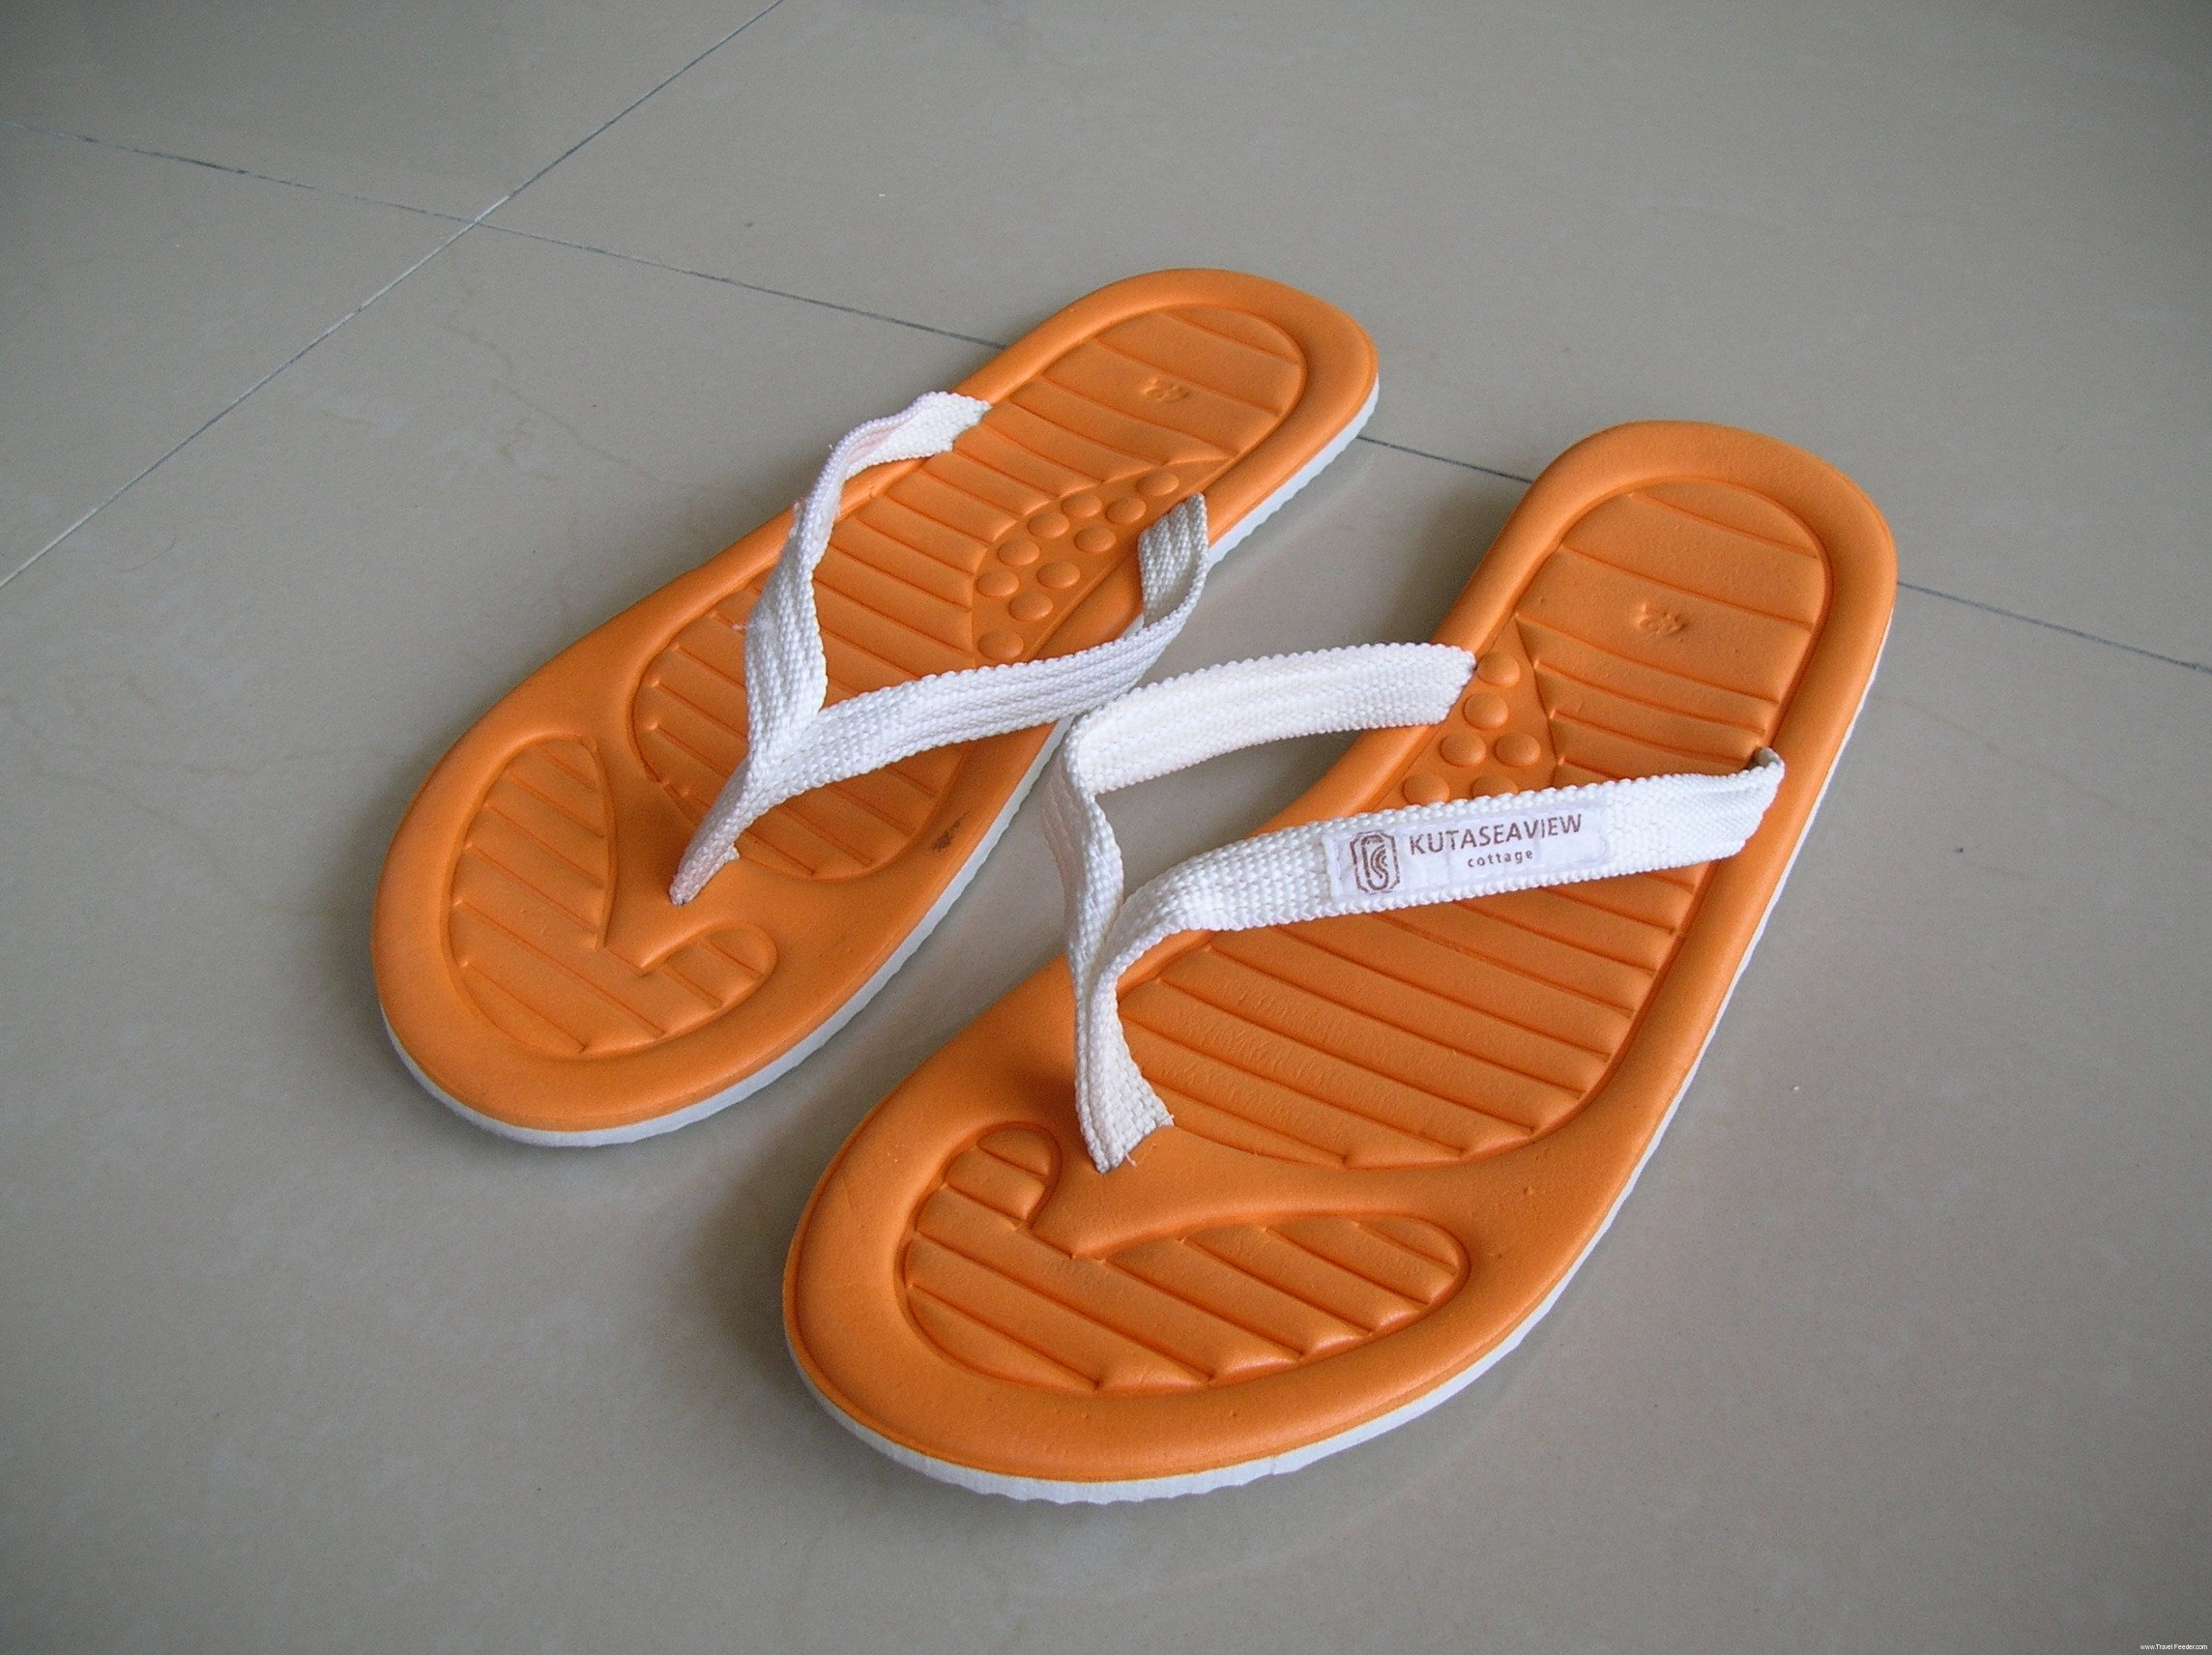 Slippers From Kuta Seaview Cottage